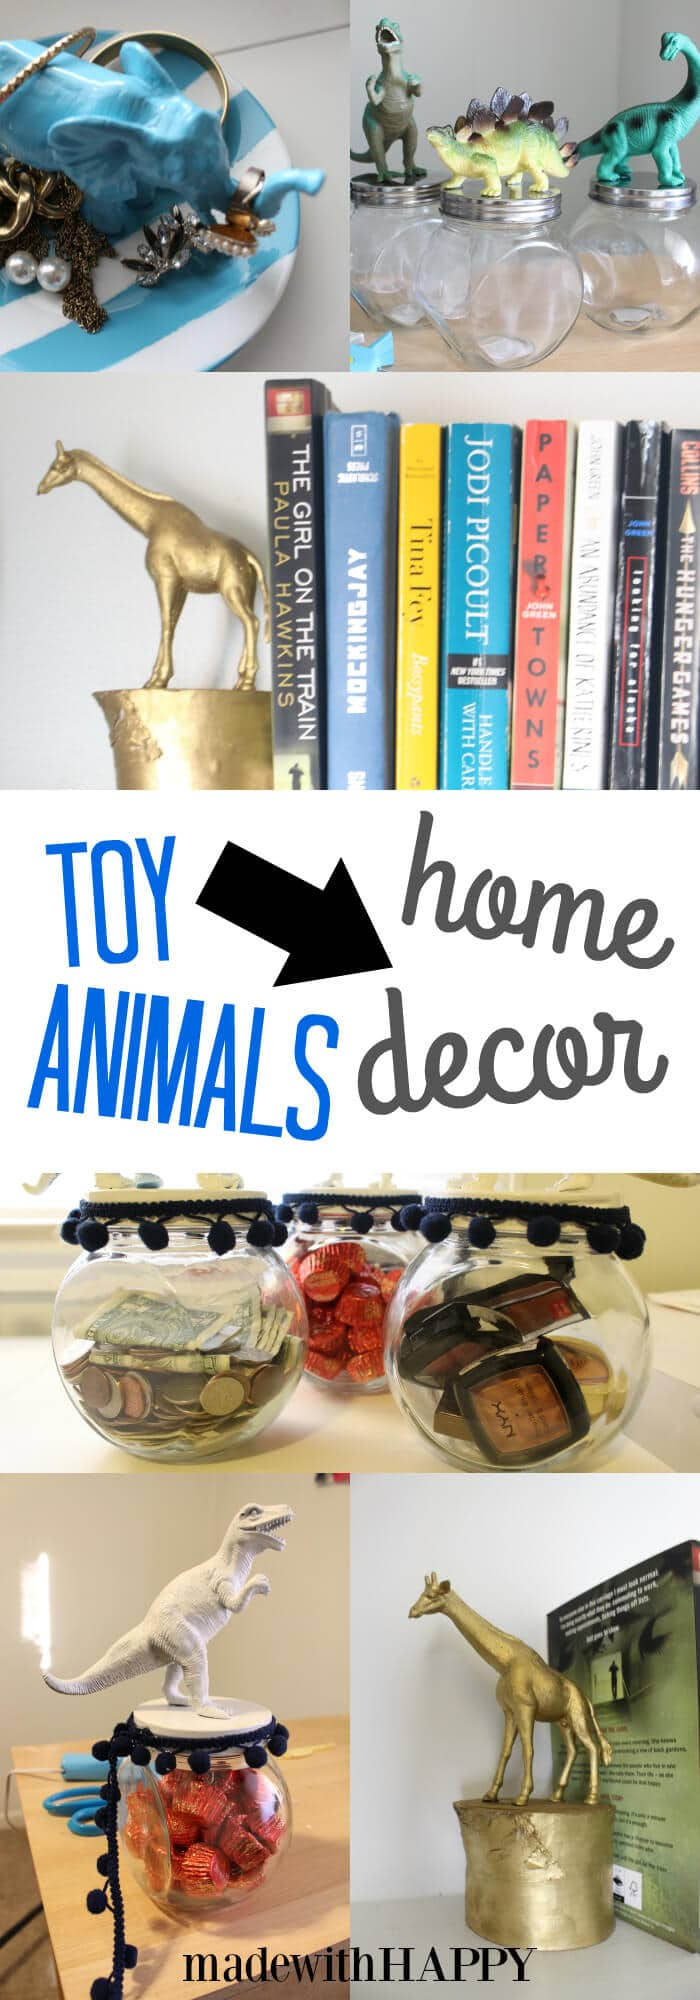 Toy Animal Projects | Toy Animal Home Decor | Fun with plastic toys | www.madewithHAPPY.com